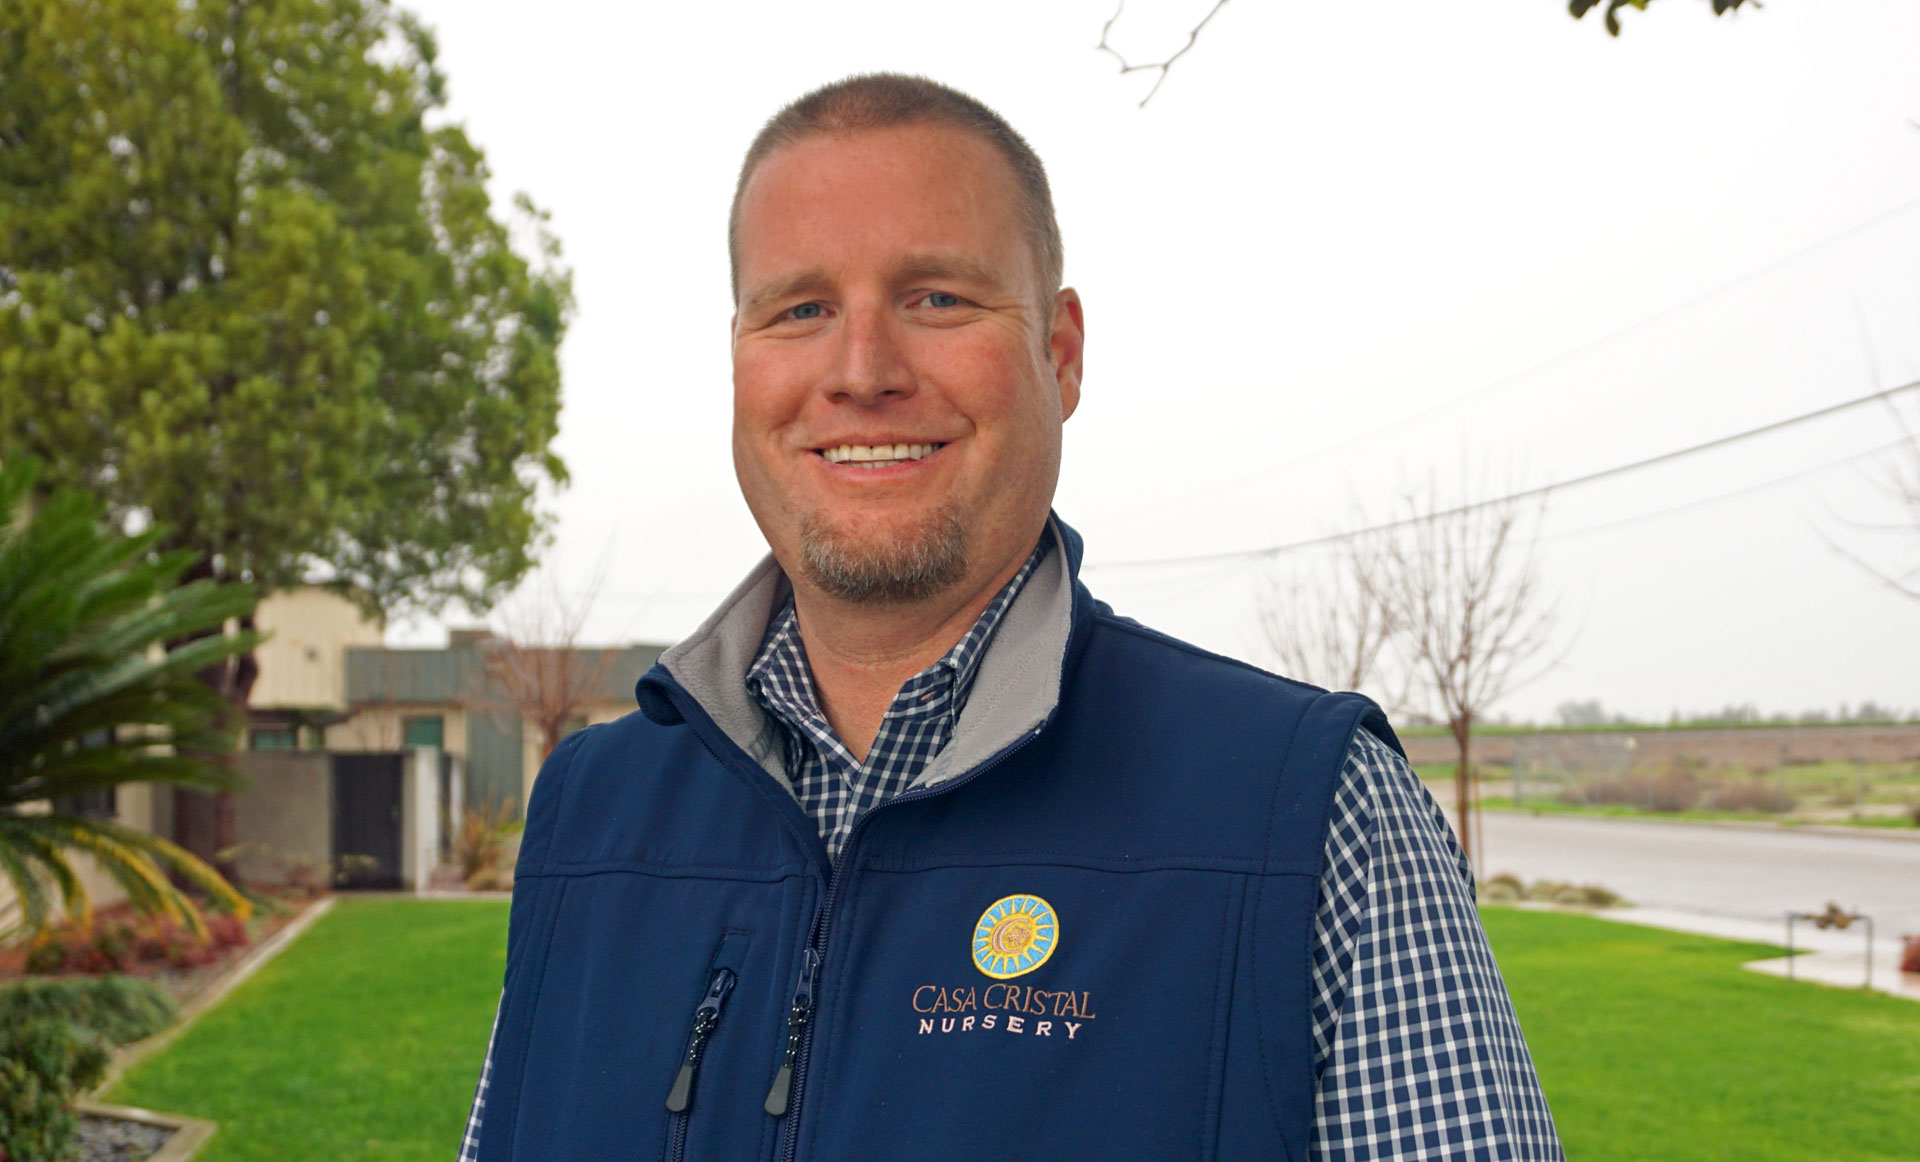 Chad Hathaway owns an oil company in Bakersfield.